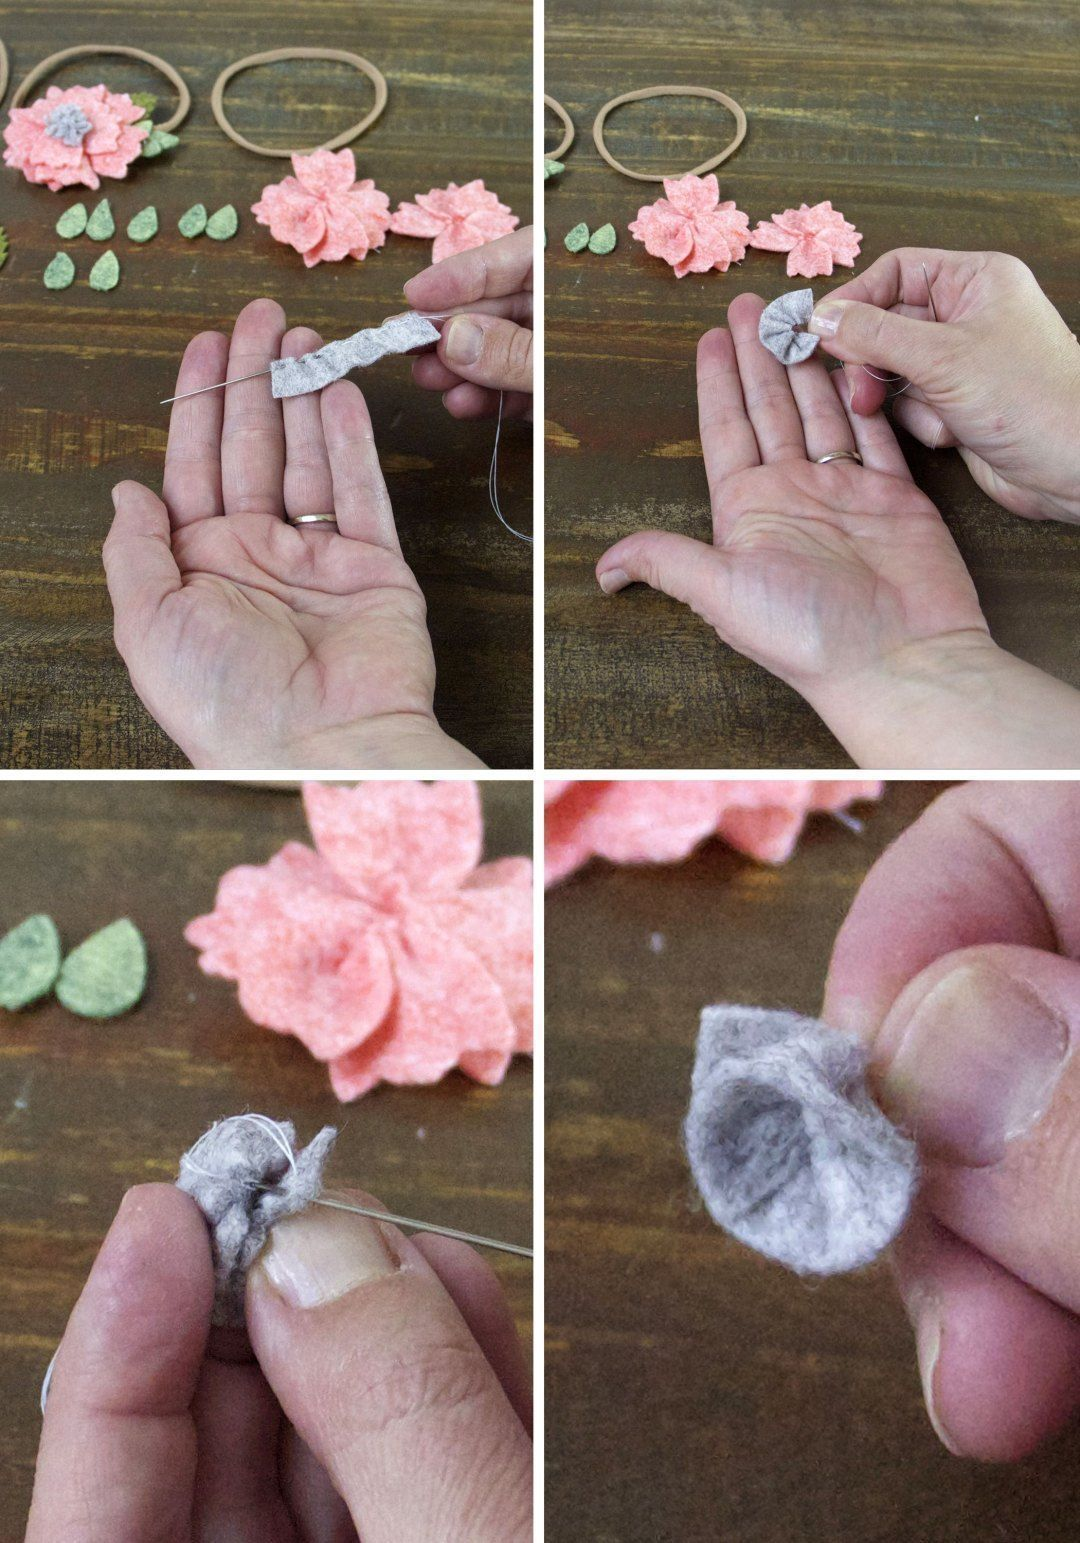 How To Make A Felt Flower Headband #feltflowerheadbands How To Make A Felt Flower Headband » Jessie K Design #feltflowerheadbands How To Make A Felt Flower Headband #feltflowerheadbands How To Make A Felt Flower Headband » Jessie K Design #feltflowerheadbands How To Make A Felt Flower Headband #feltflowerheadbands How To Make A Felt Flower Headband » Jessie K Design #feltflowerheadbands How To Make A Felt Flower Headband #feltflowerheadbands How To Make A Felt Flower Headband » Jessie K Desi #feltflowerheadbands